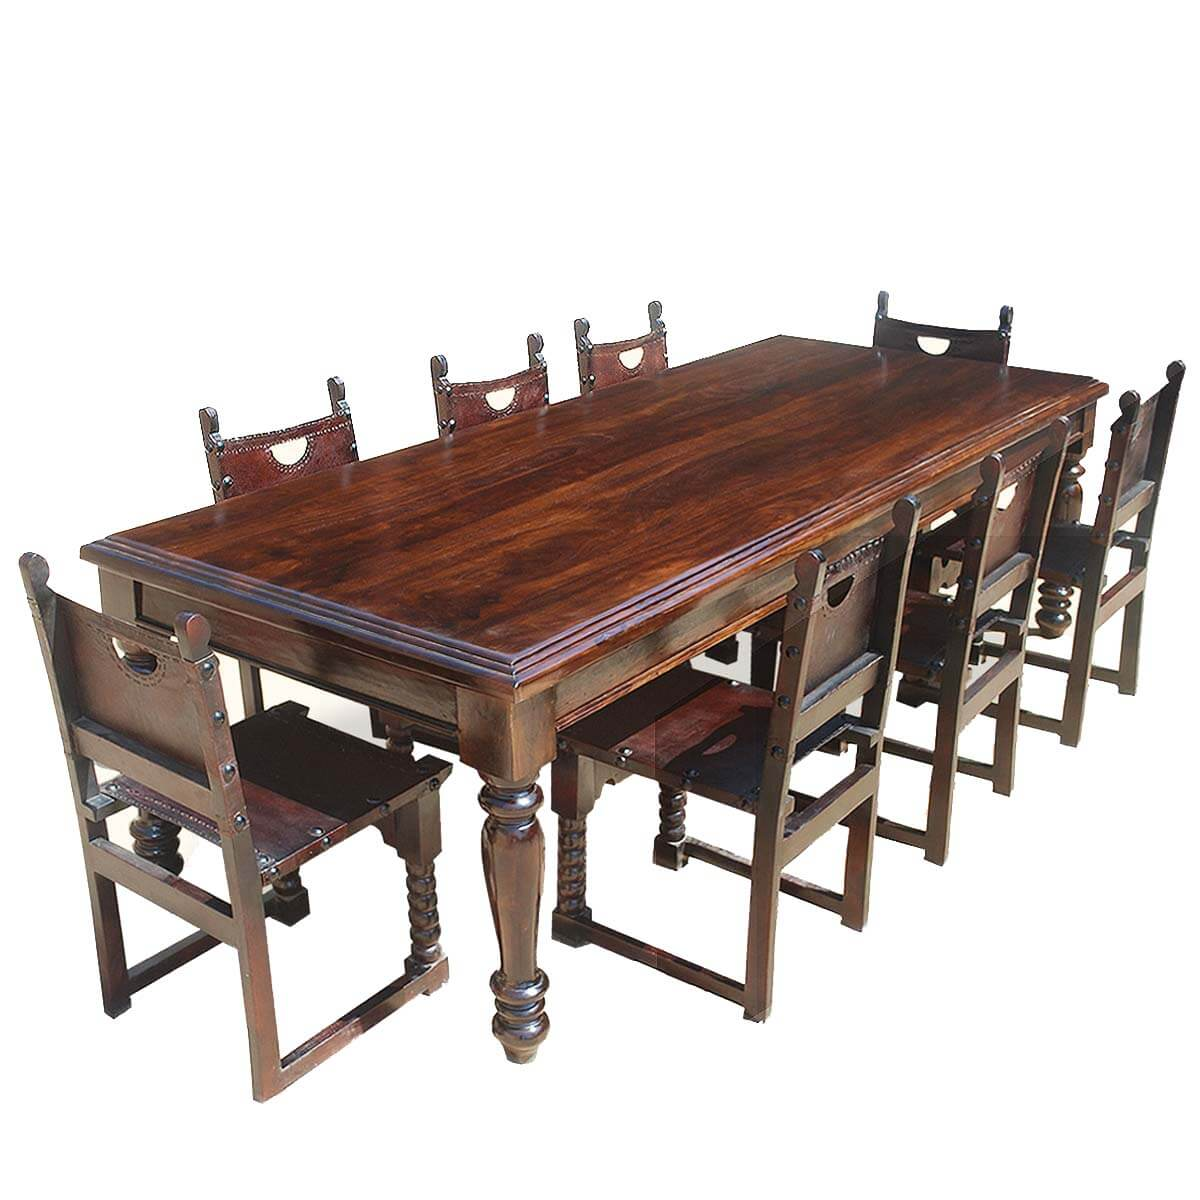 Large Rustic Solid Wood Dining Room Table W 8 Leather Chairs Set. Full resolution‎  photograph, nominally Width 1200 Height 1200 pixels, photograph with #957D36.